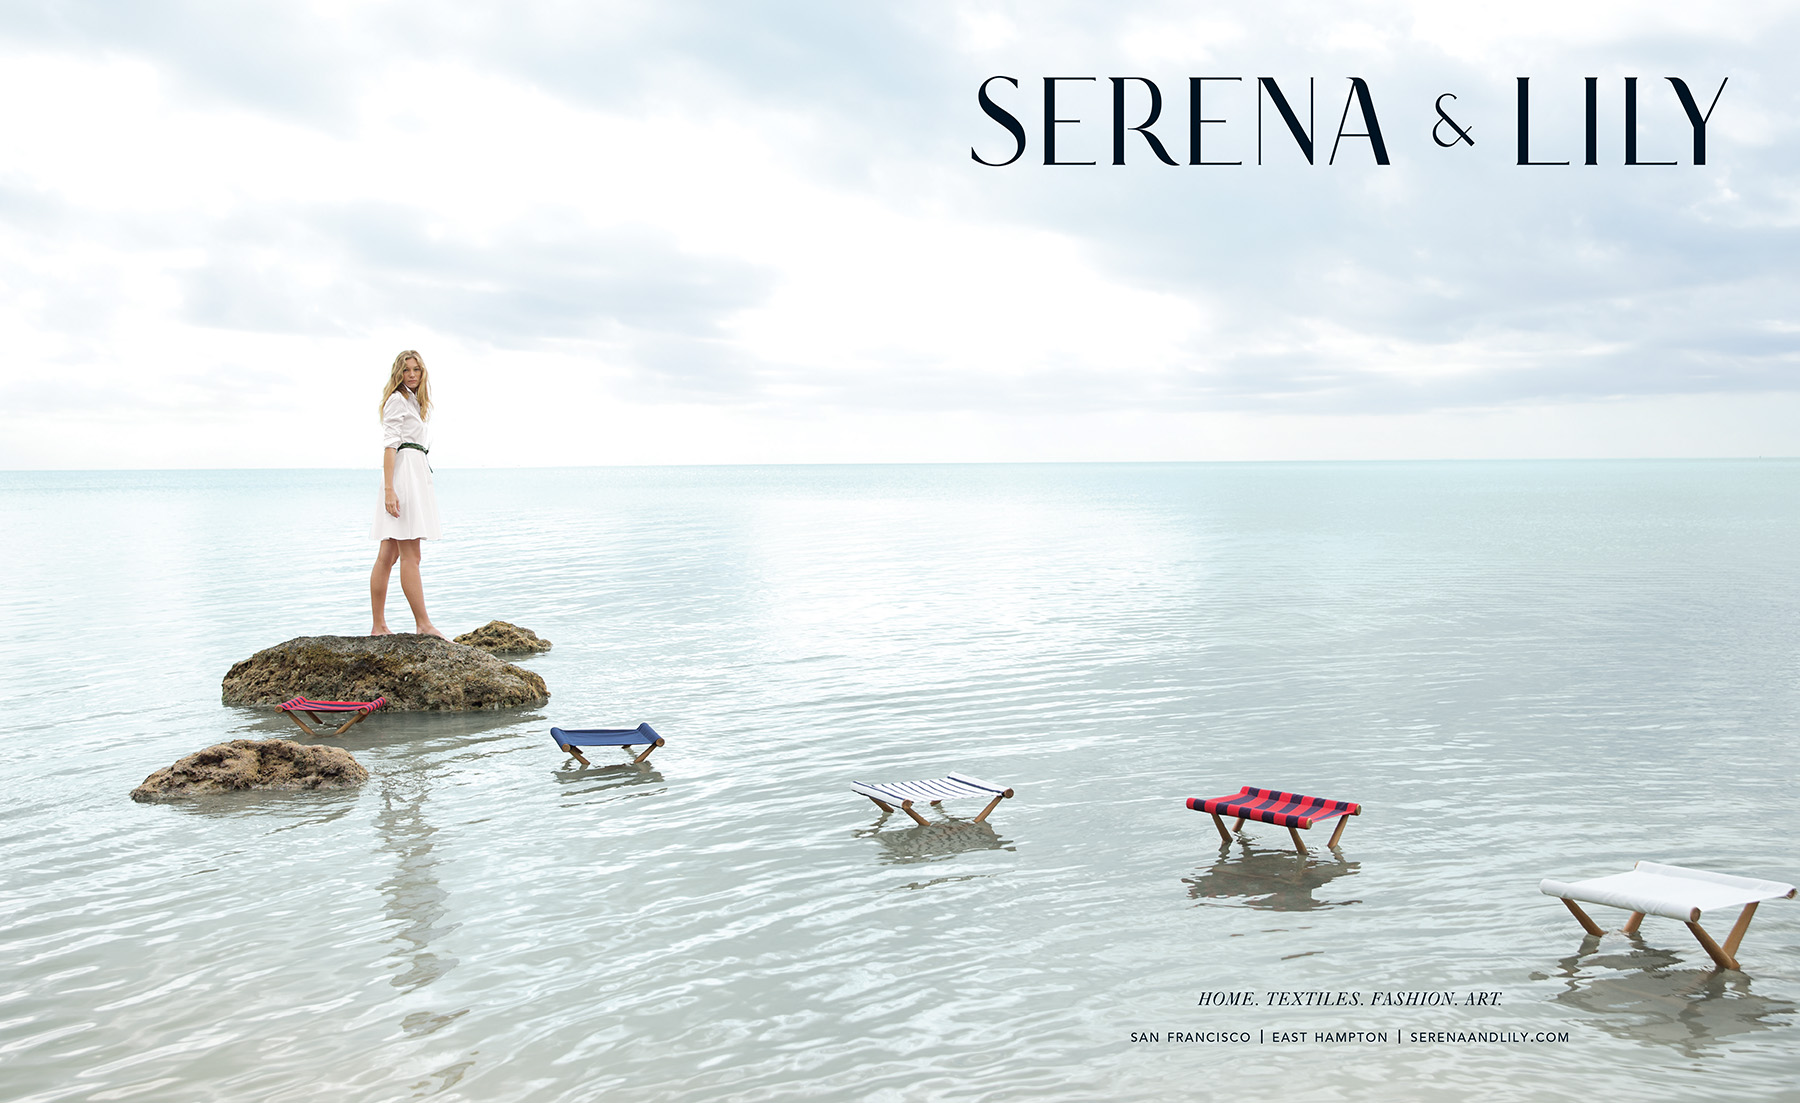 Advertising: Serena and Lily, Summer 2015